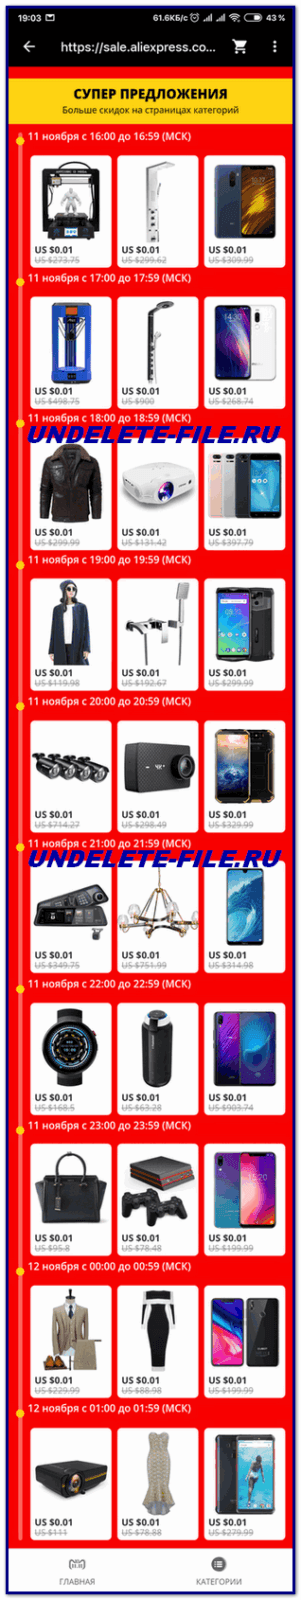 Products with prices of 1 cent